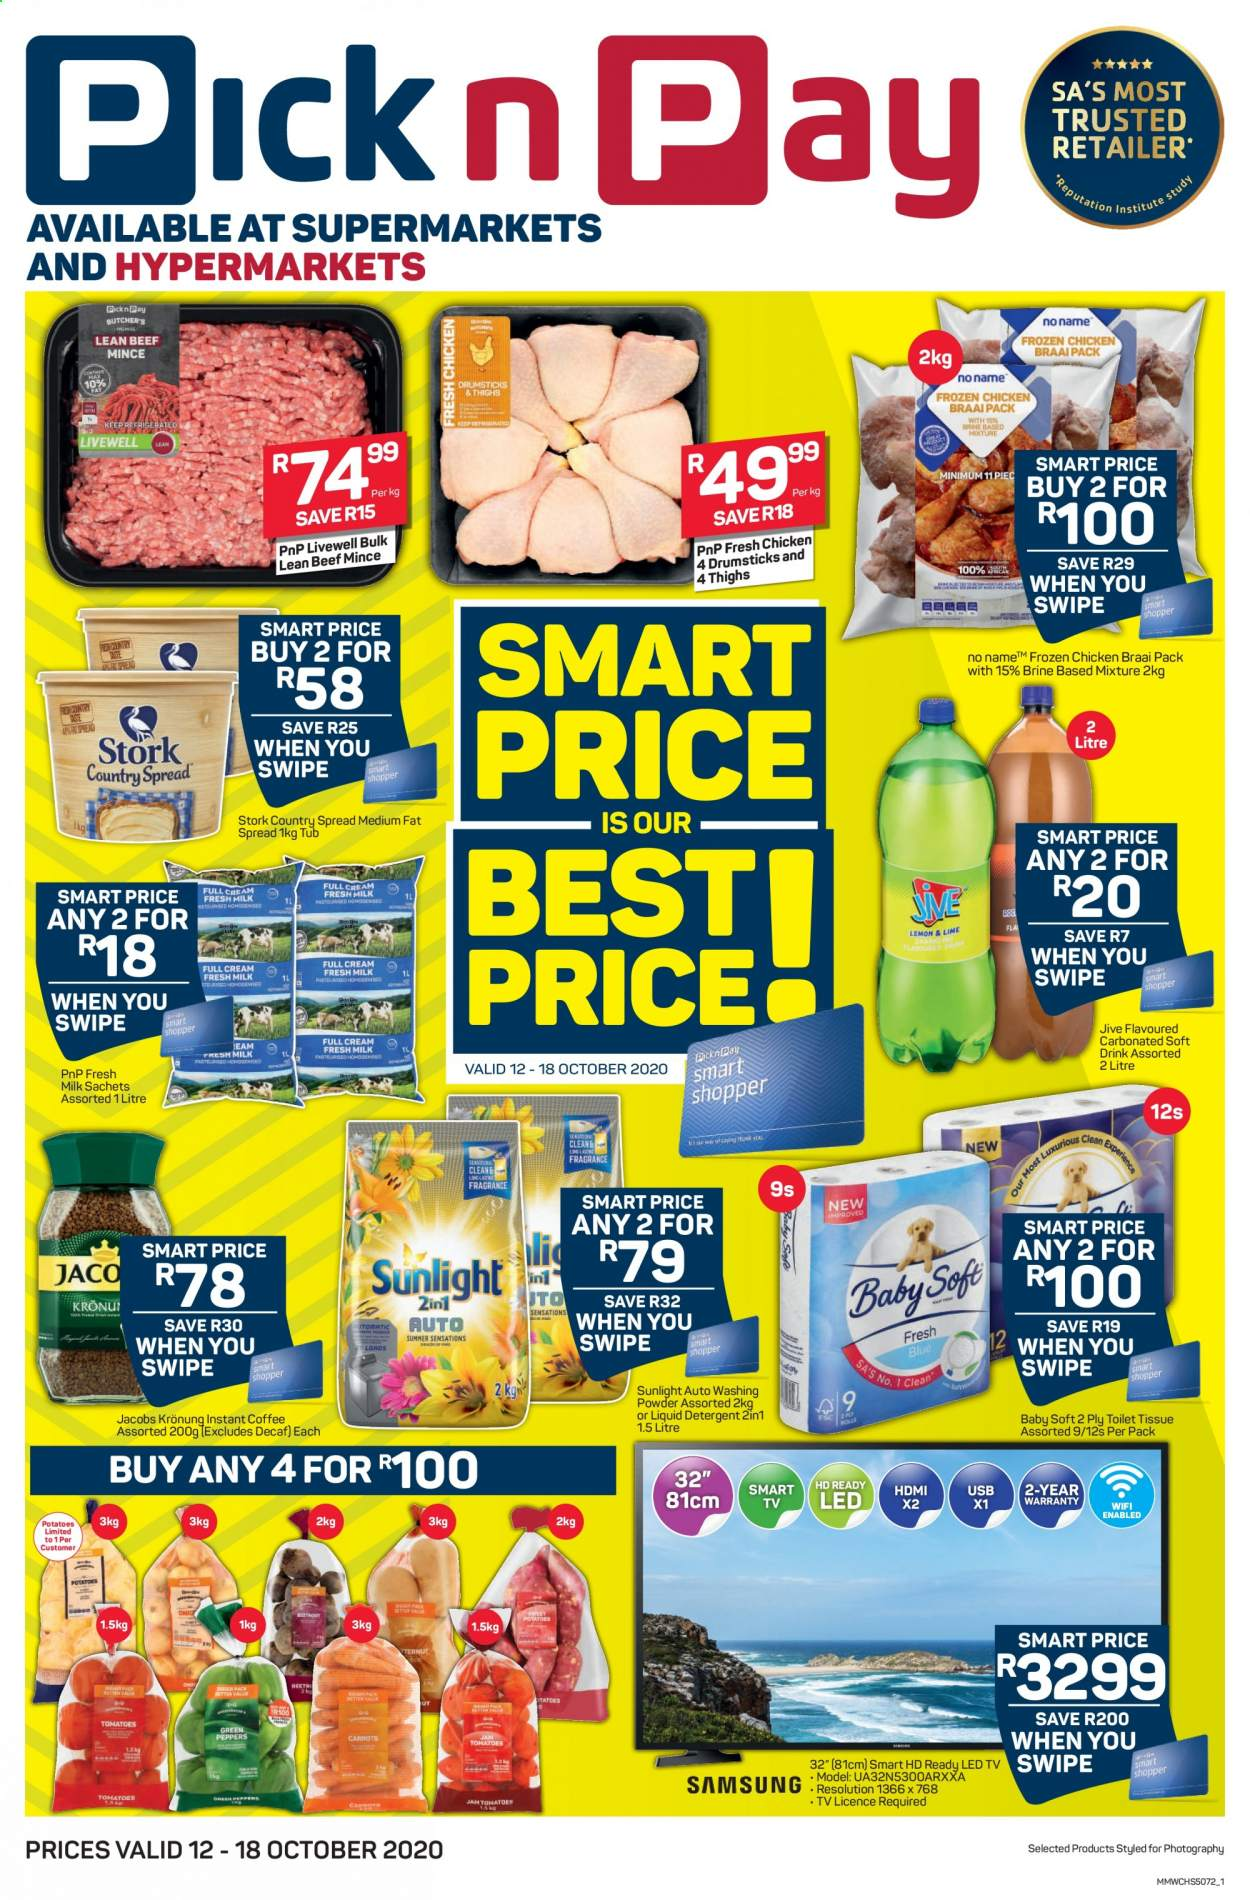 Pick n Pay catalogue  - 10.12.2020 - 10.18.2020 - Sales products - beef meat, detergent, led tv, milk, smart tv, wifi, hd ready, hdmi, instant coffee, potatoes, chicken, fat spread, jacobs, toilet tissue, drink, liquid detergent, washing powder, usb, carbonated soft drink, soft drink, led. Page 1.